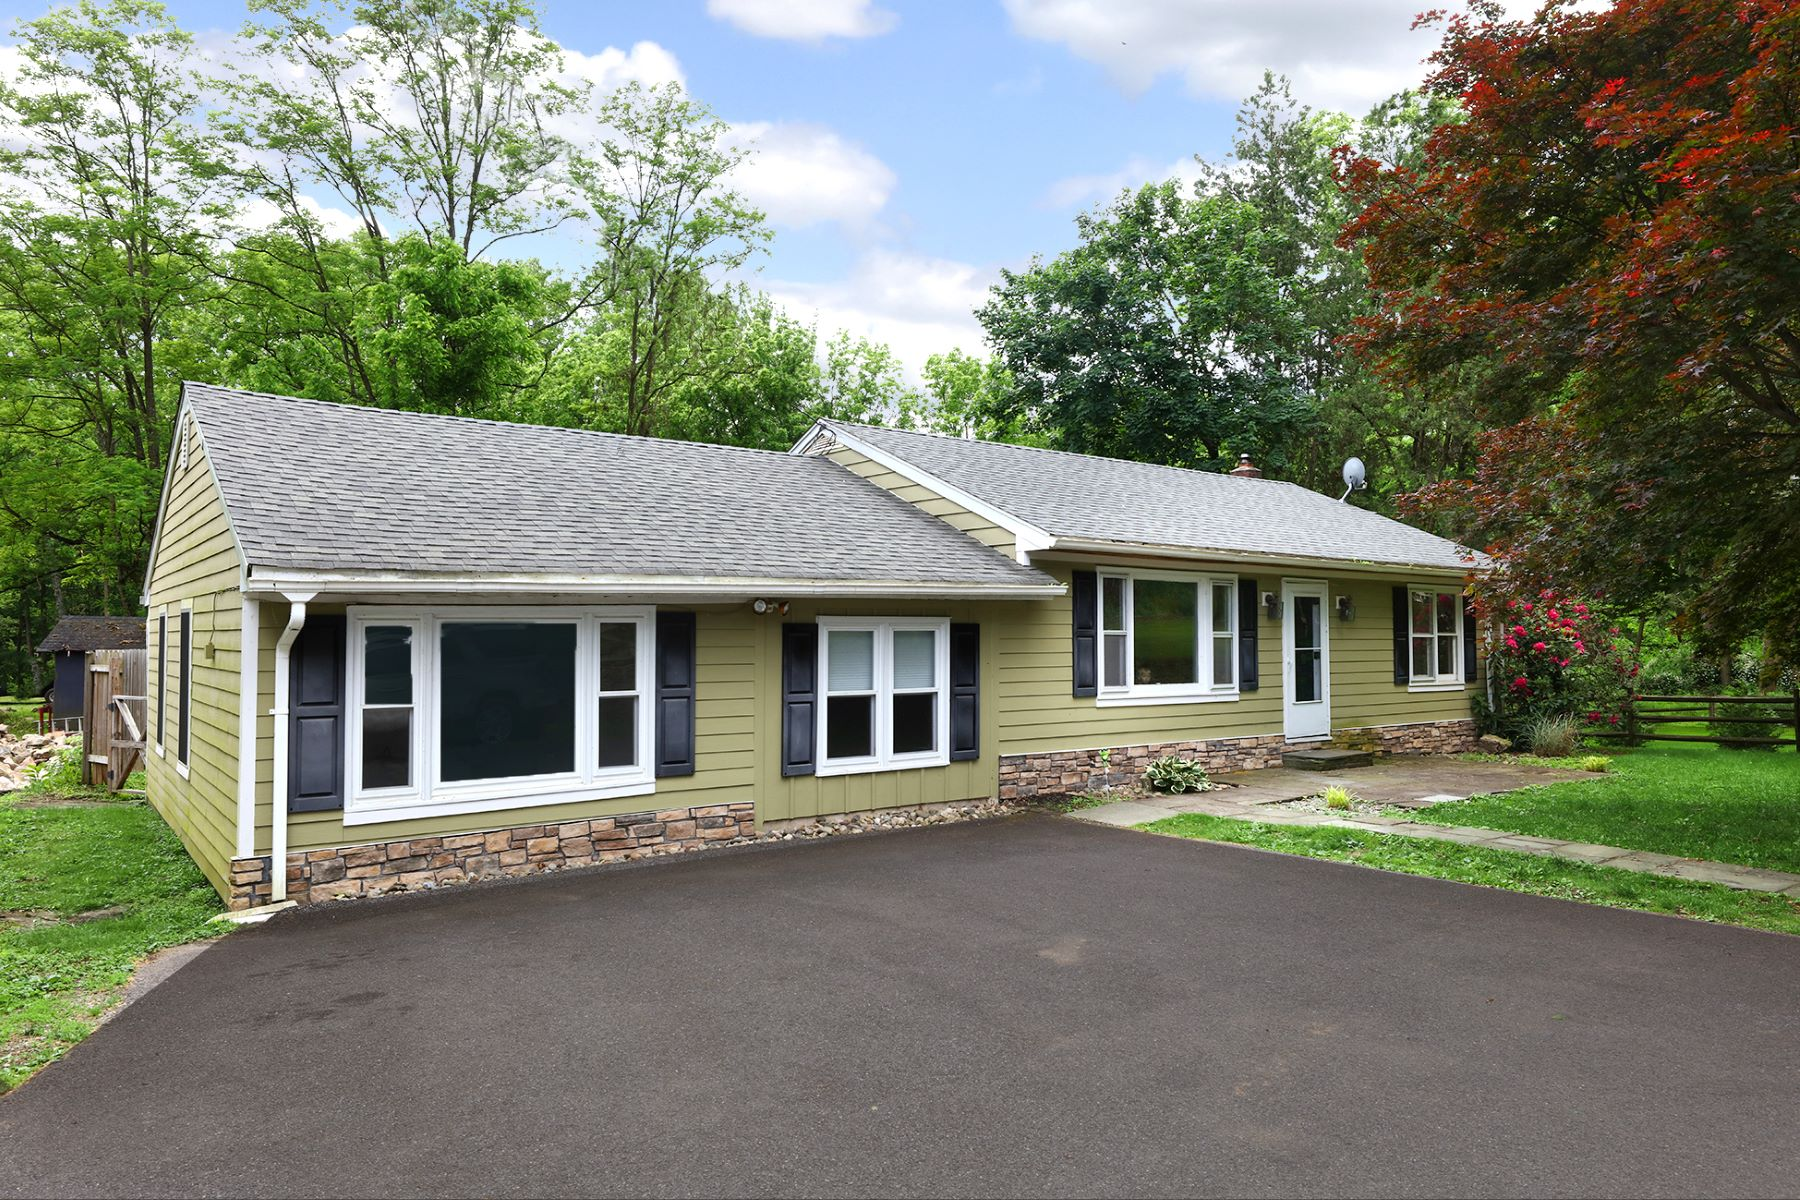 Single Family Home for Sale at Escape To The Space And Fresh Air Of Country Life 230 County Route 627, Phillipsburg, New Jersey 08865 United States